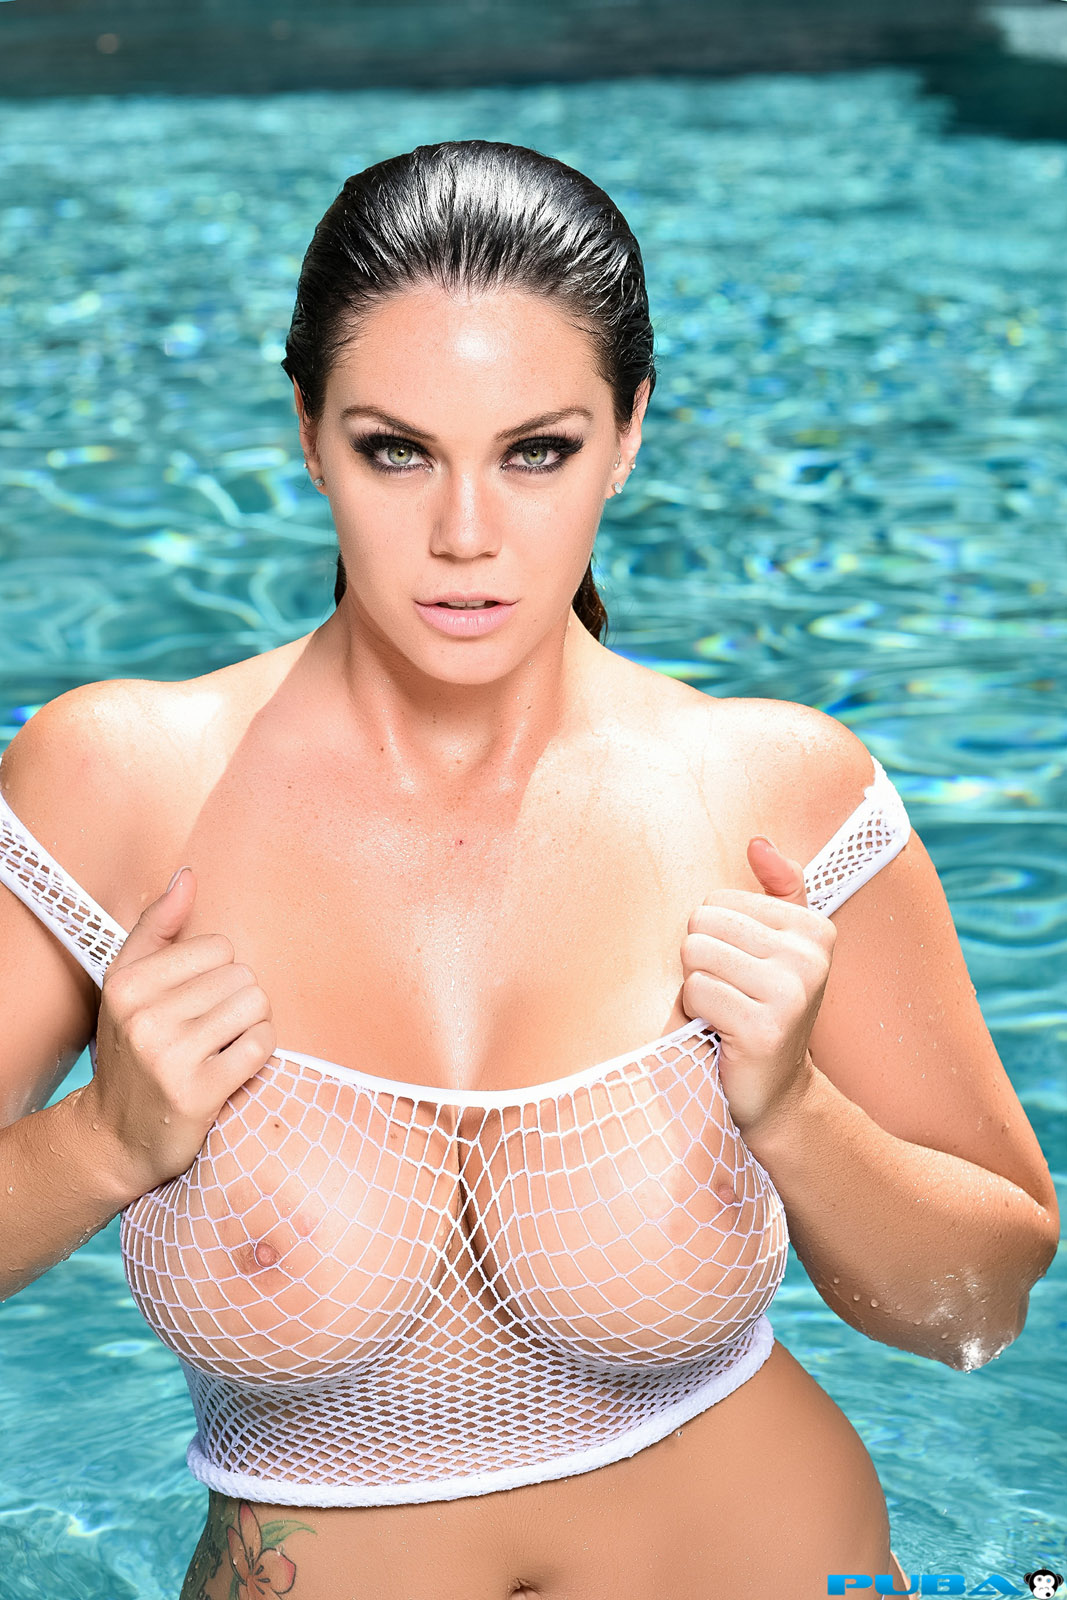 alison tyler nude in the pool - foxhq